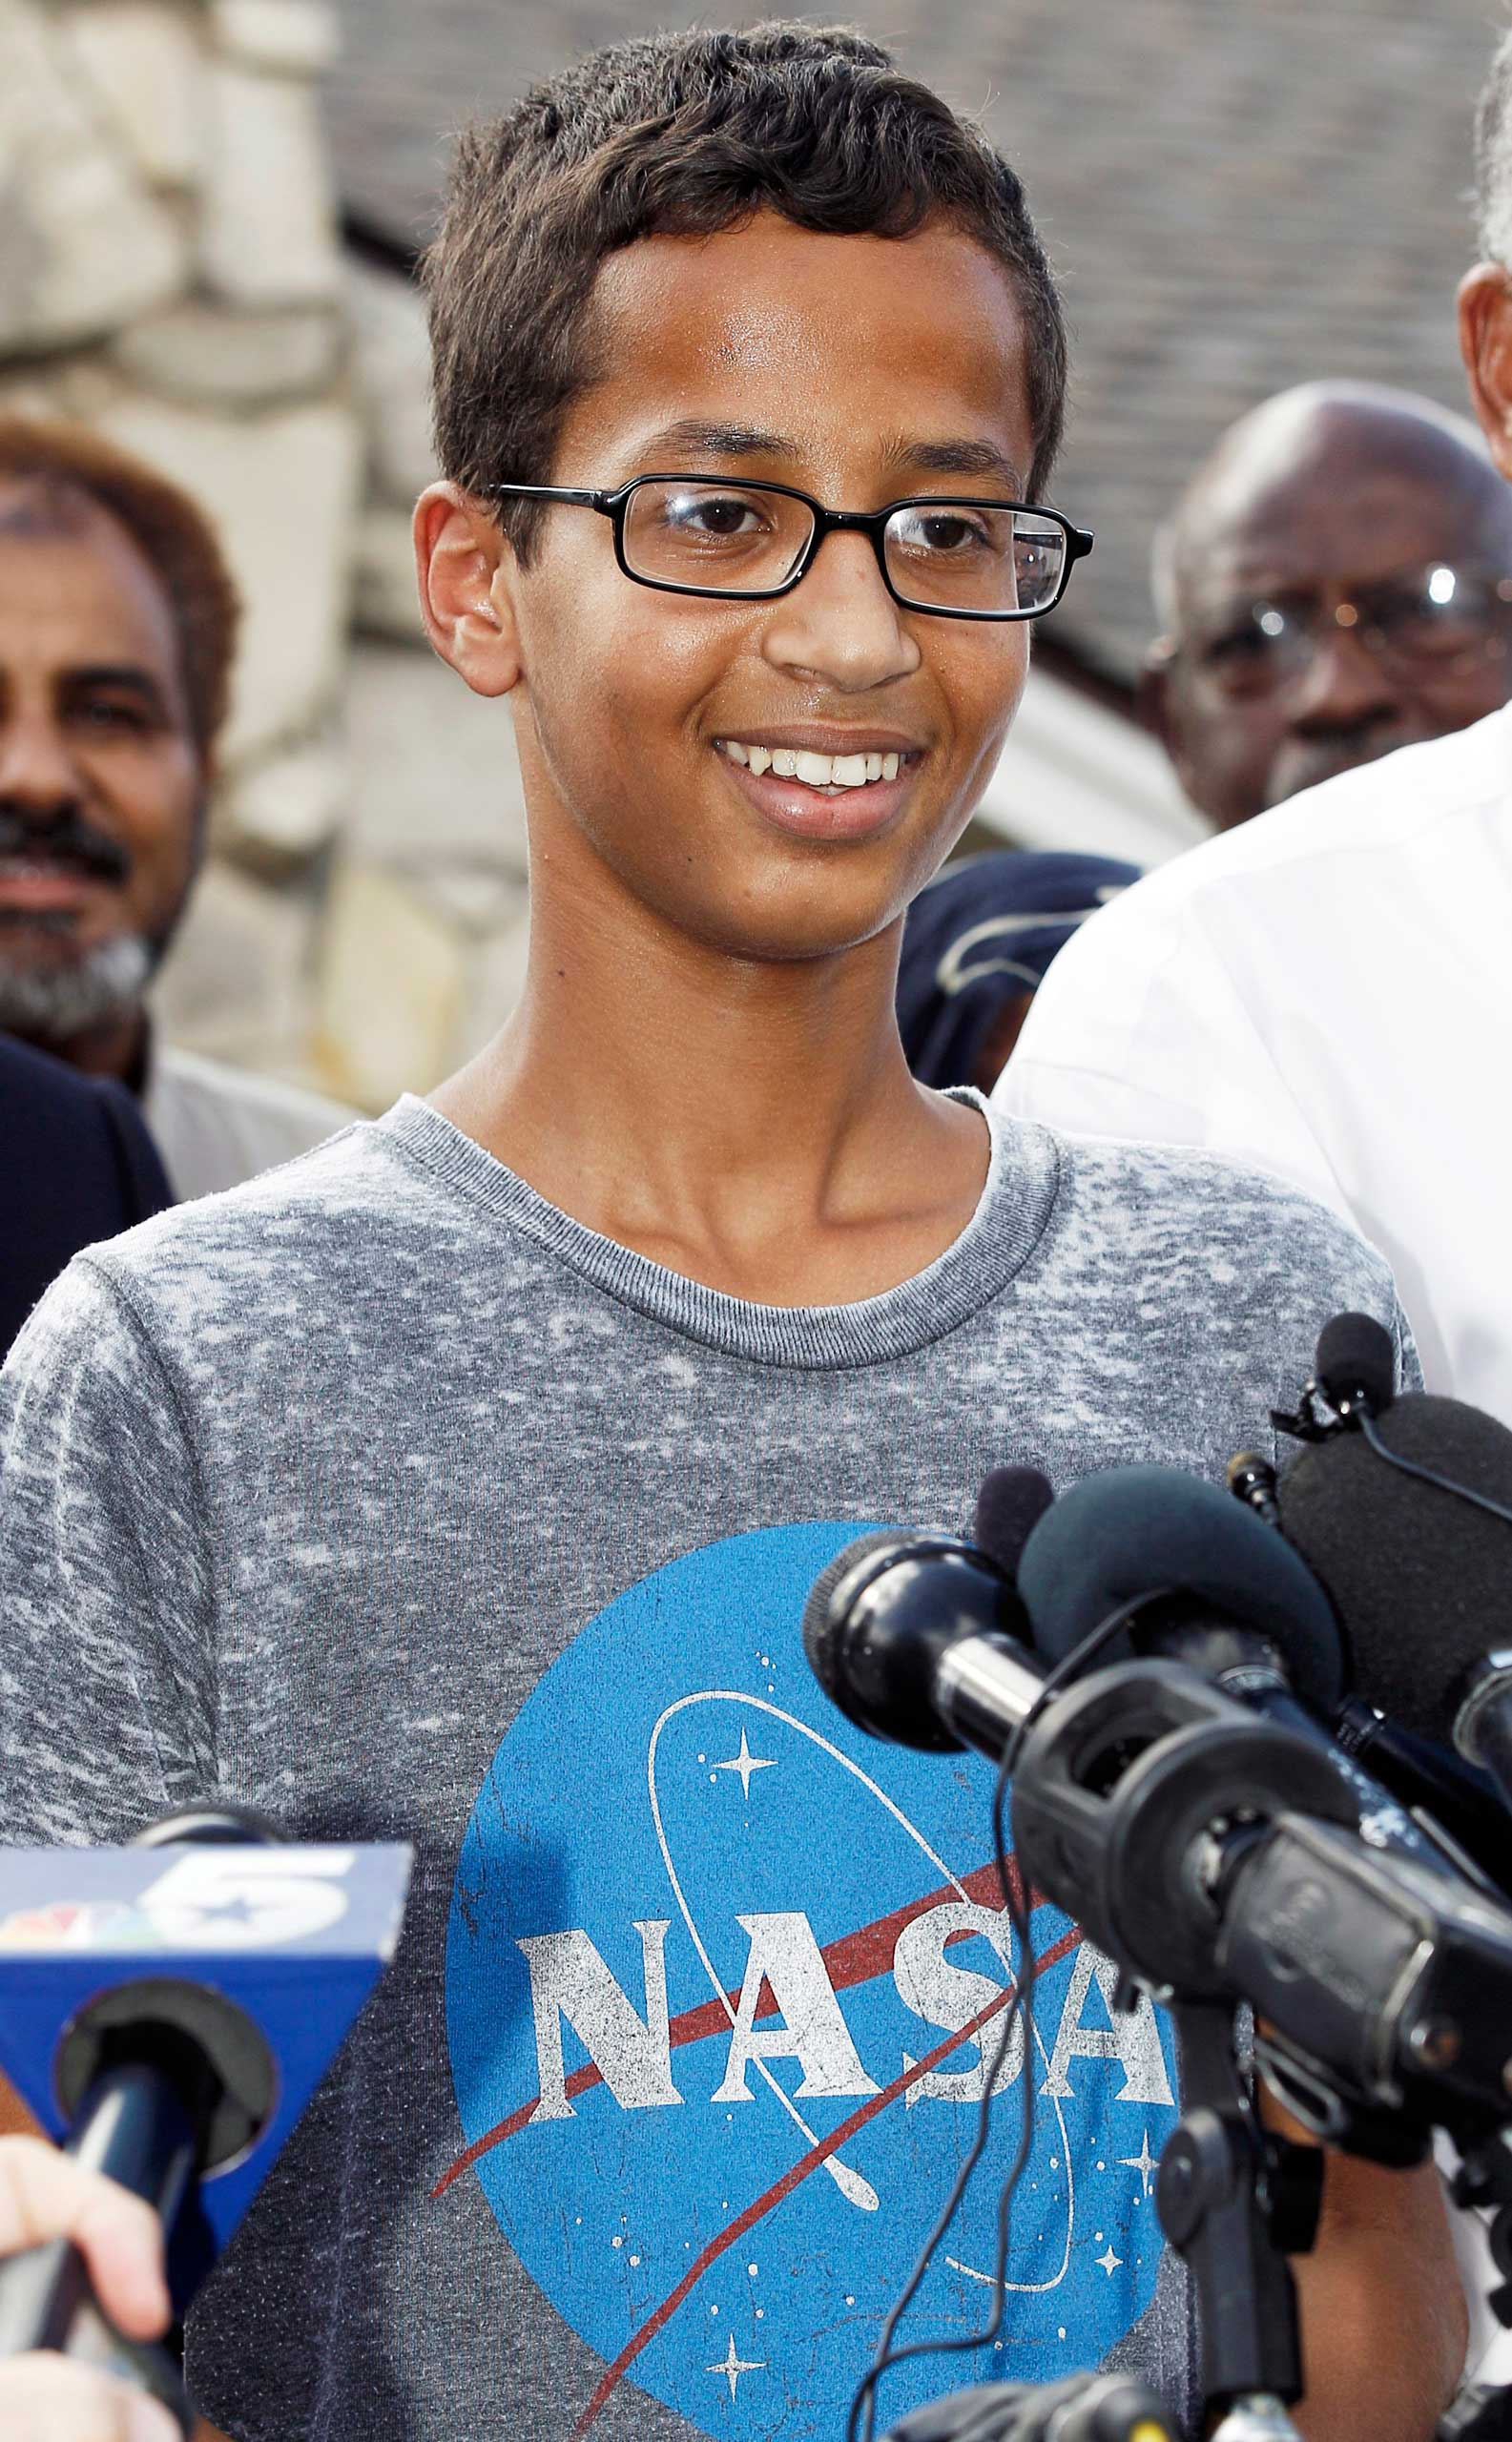 Ahmed Mohamed, 14, thanks supporters during a news conference at his home, in Irving, Texas, on Sept. 16, 2015